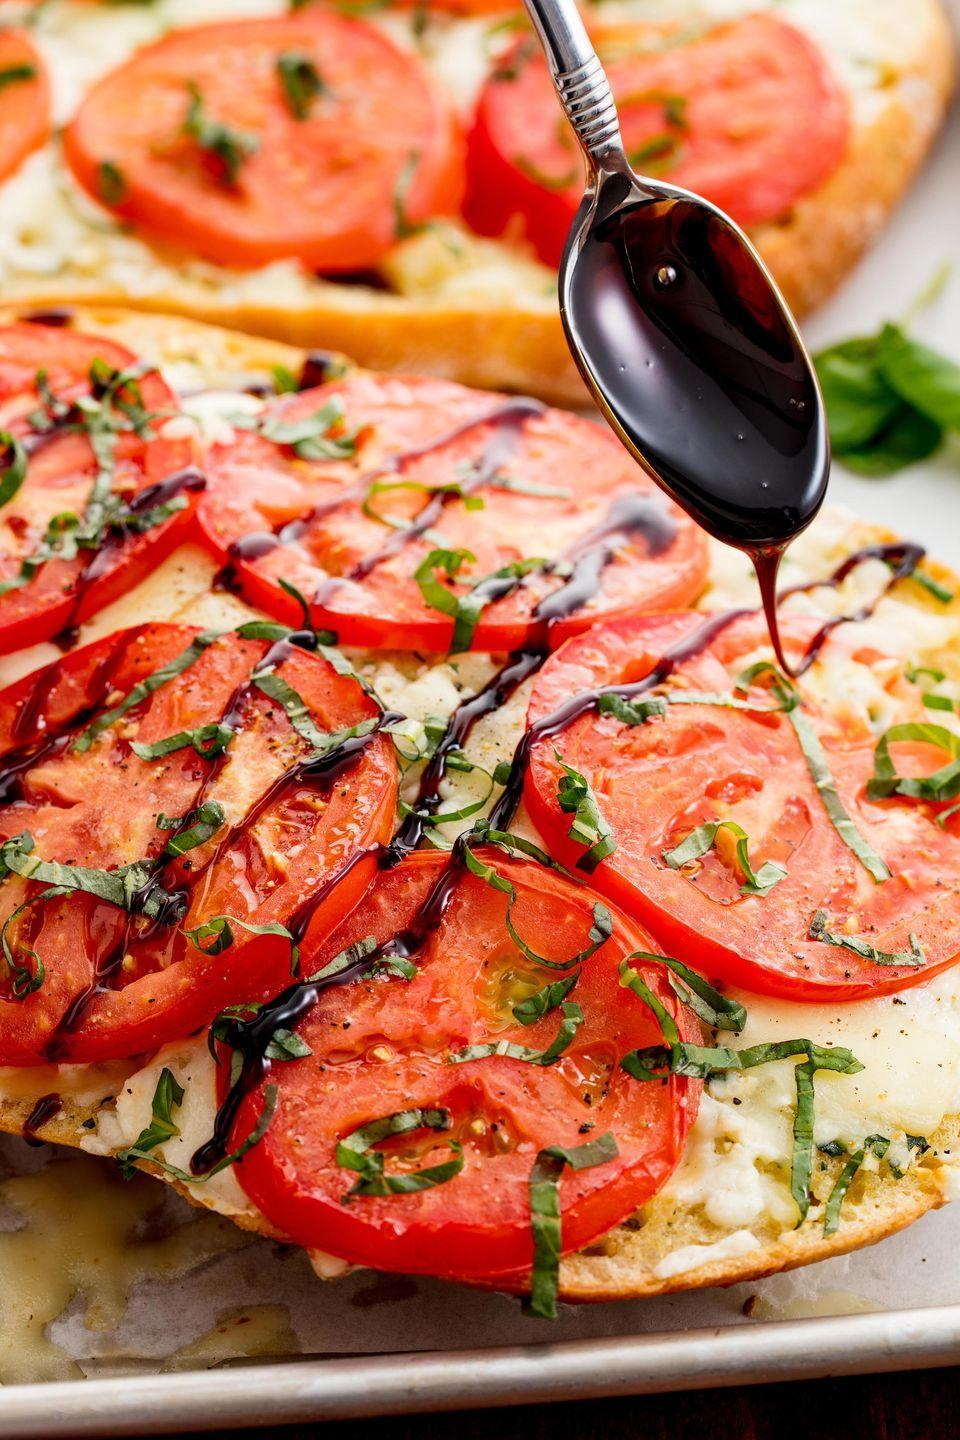 """<p>Melty mozzarella and fresh tomatoes give basic garlic bread a MAJOR upgrade.</p><p>Get the recipe from <a href=""""https://www.delish.com/cooking/recipe-ideas/recipes/a51475/caprese-garlic-bread-recipe/"""" rel=""""nofollow noopener"""" target=""""_blank"""" data-ylk=""""slk:Delish"""" class=""""link rapid-noclick-resp"""">Delish</a>.</p>"""